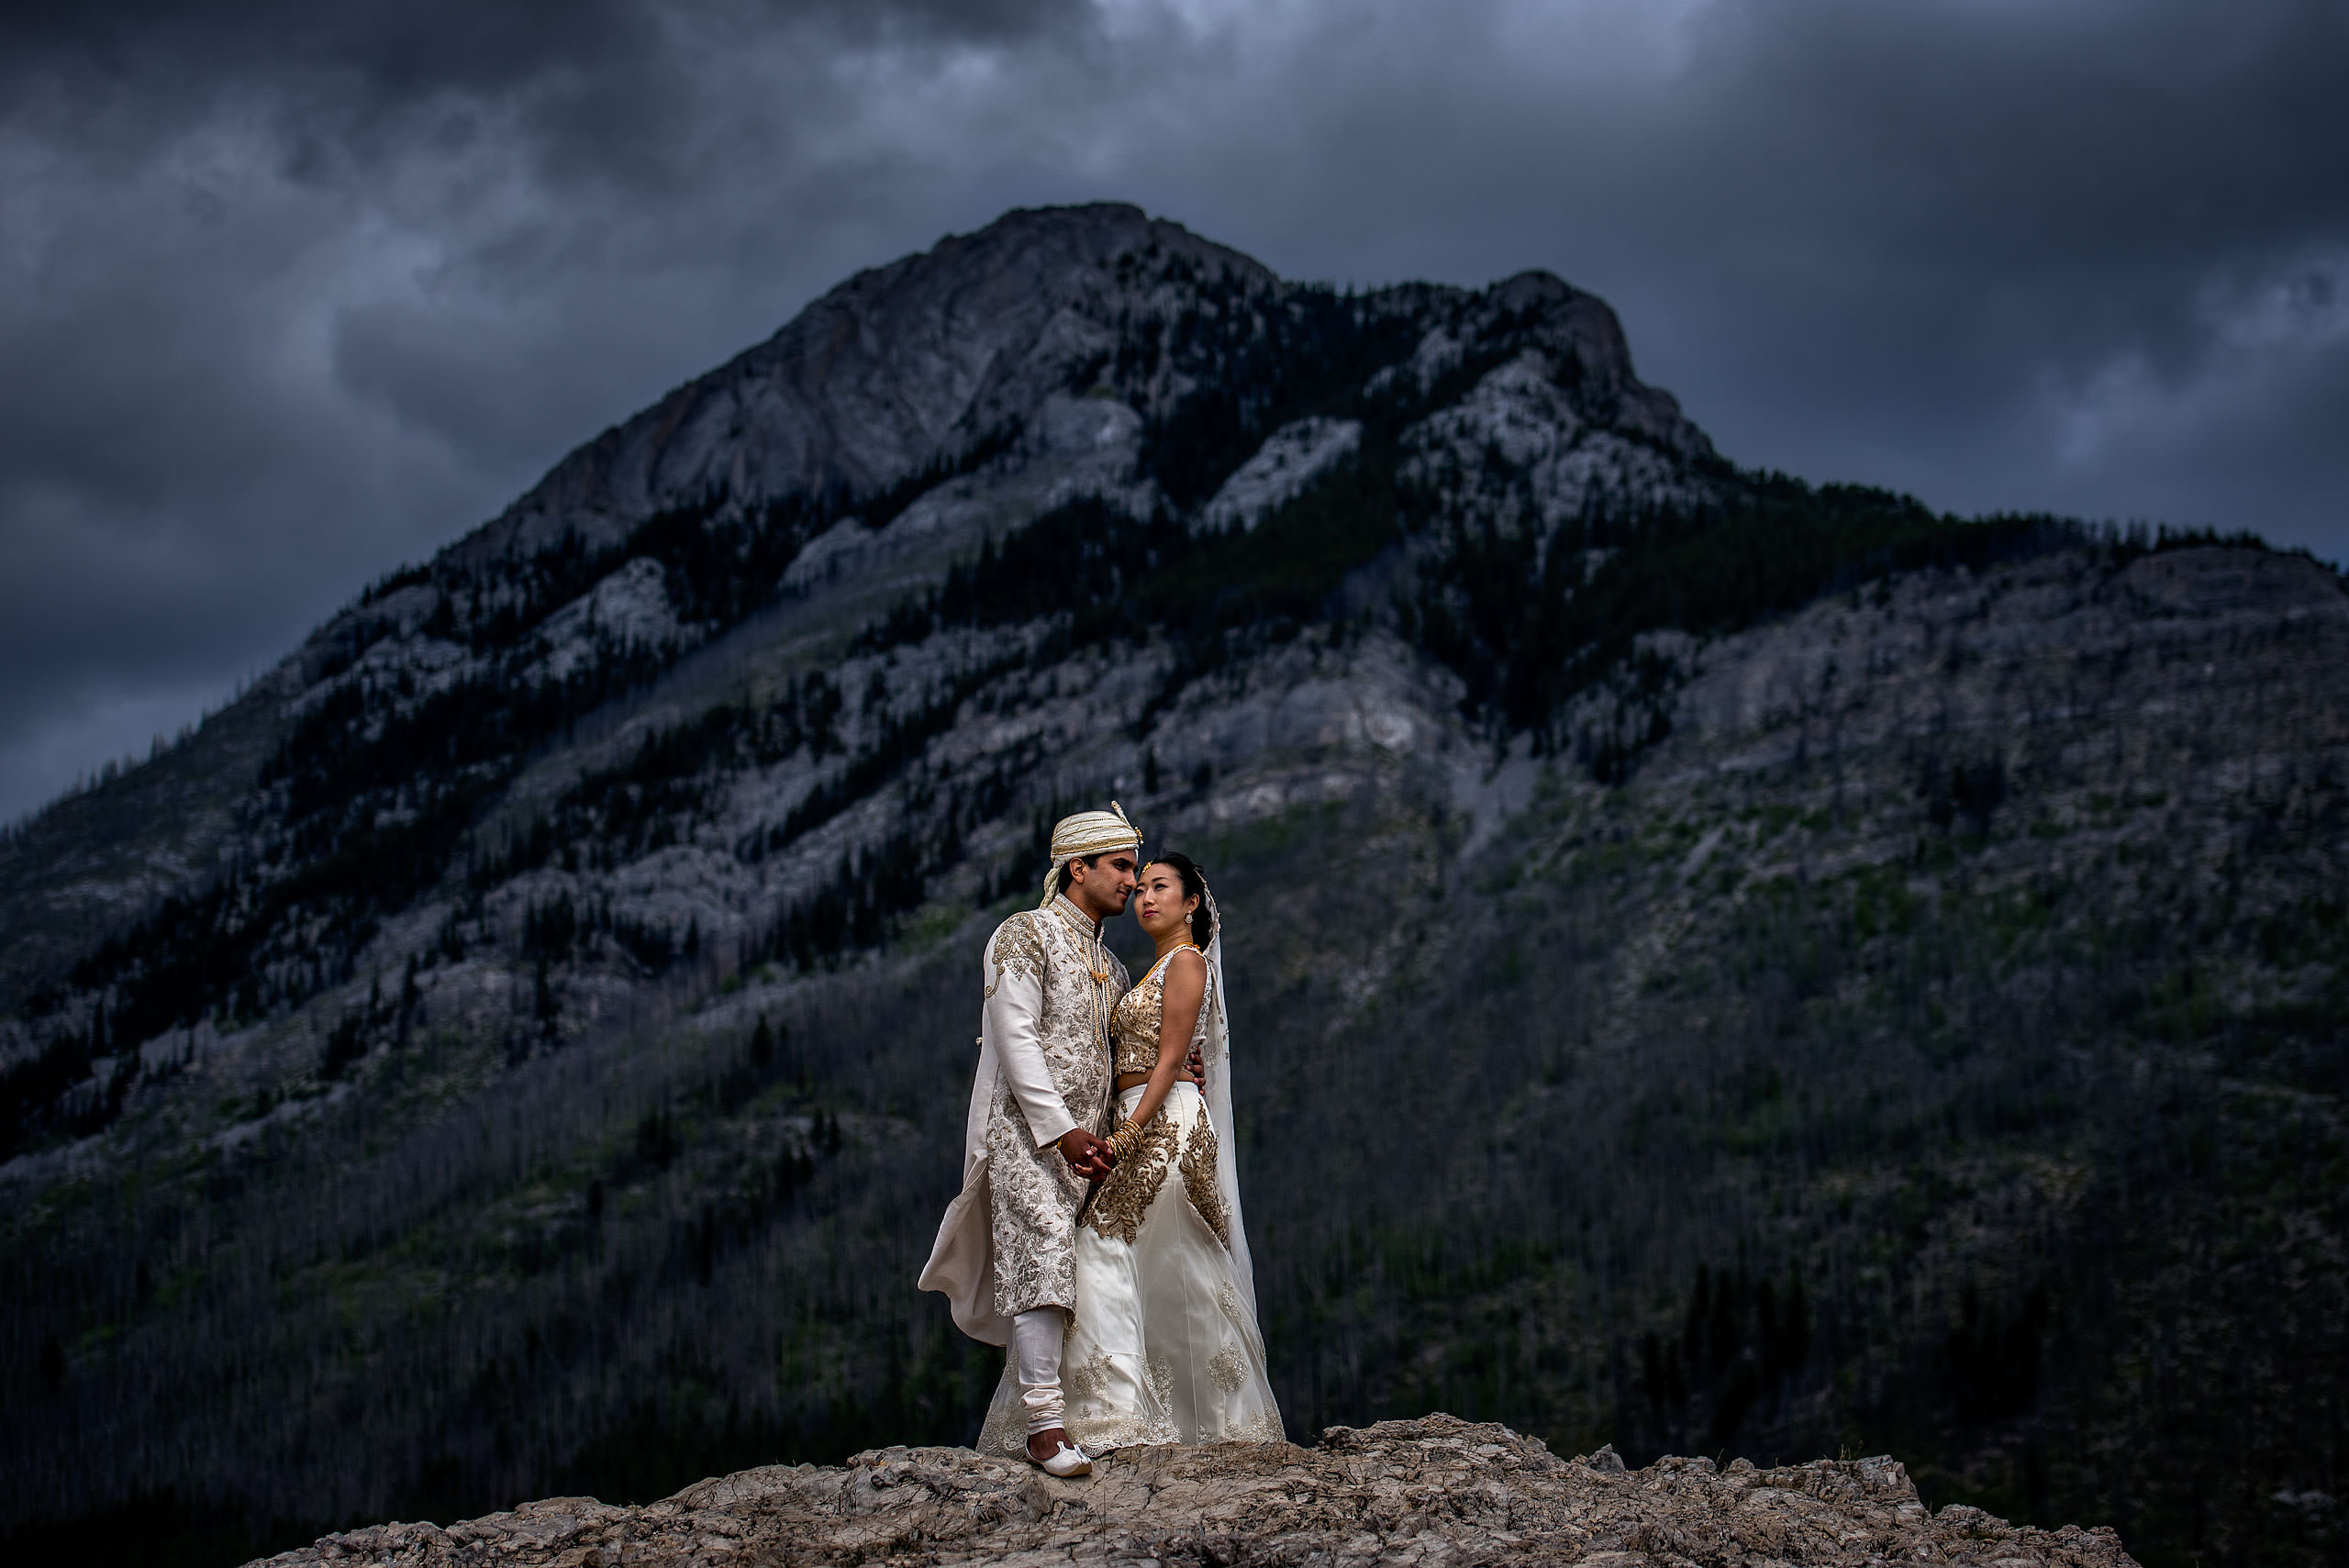 Indian bride and groom wearing traditional Indian wedding clothing embracing on top of a mountain